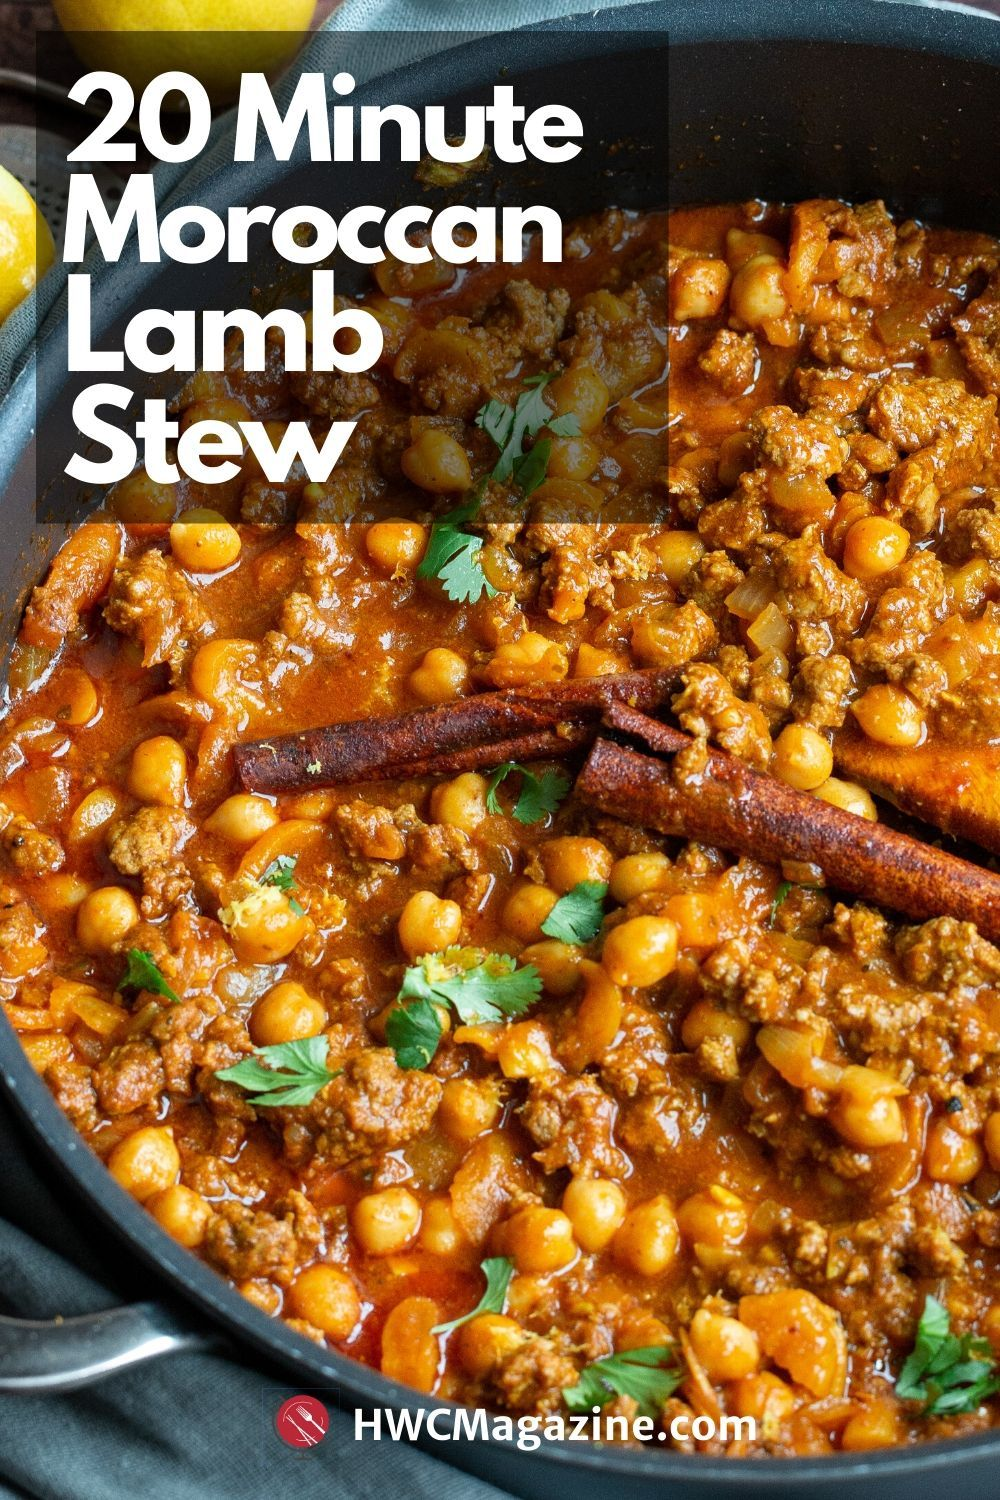 Easy Moroccan Ground Lamb Stew Recipe In 2020 Lamb Stew Recipes Lamb Stew Ground Lamb Recipes